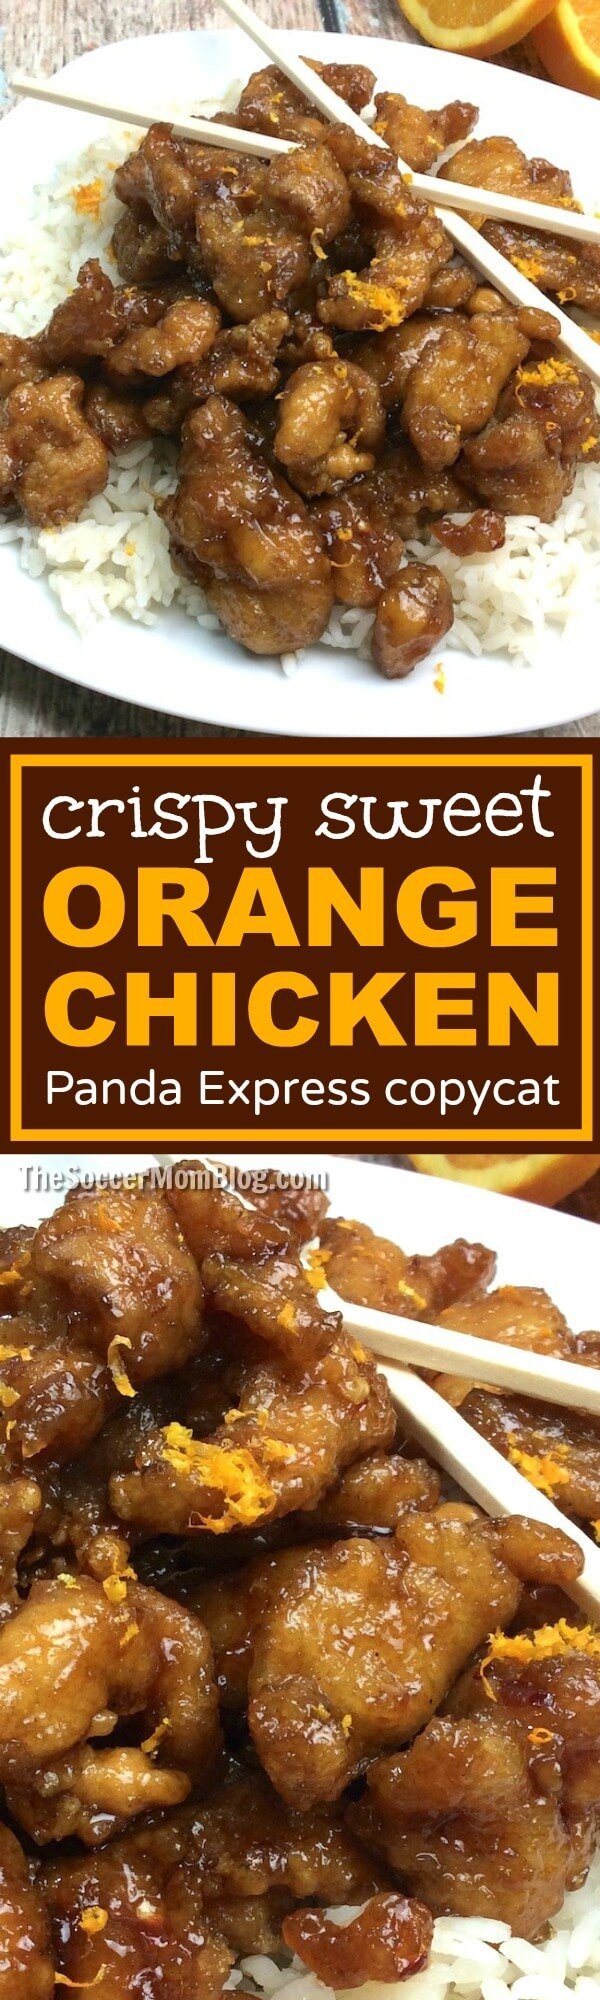 A spot-on copy cat of Panda Express' famous Crispy Orange Chicken that you can easily make at home. Simple, real ingredients for this Chinese food fav!